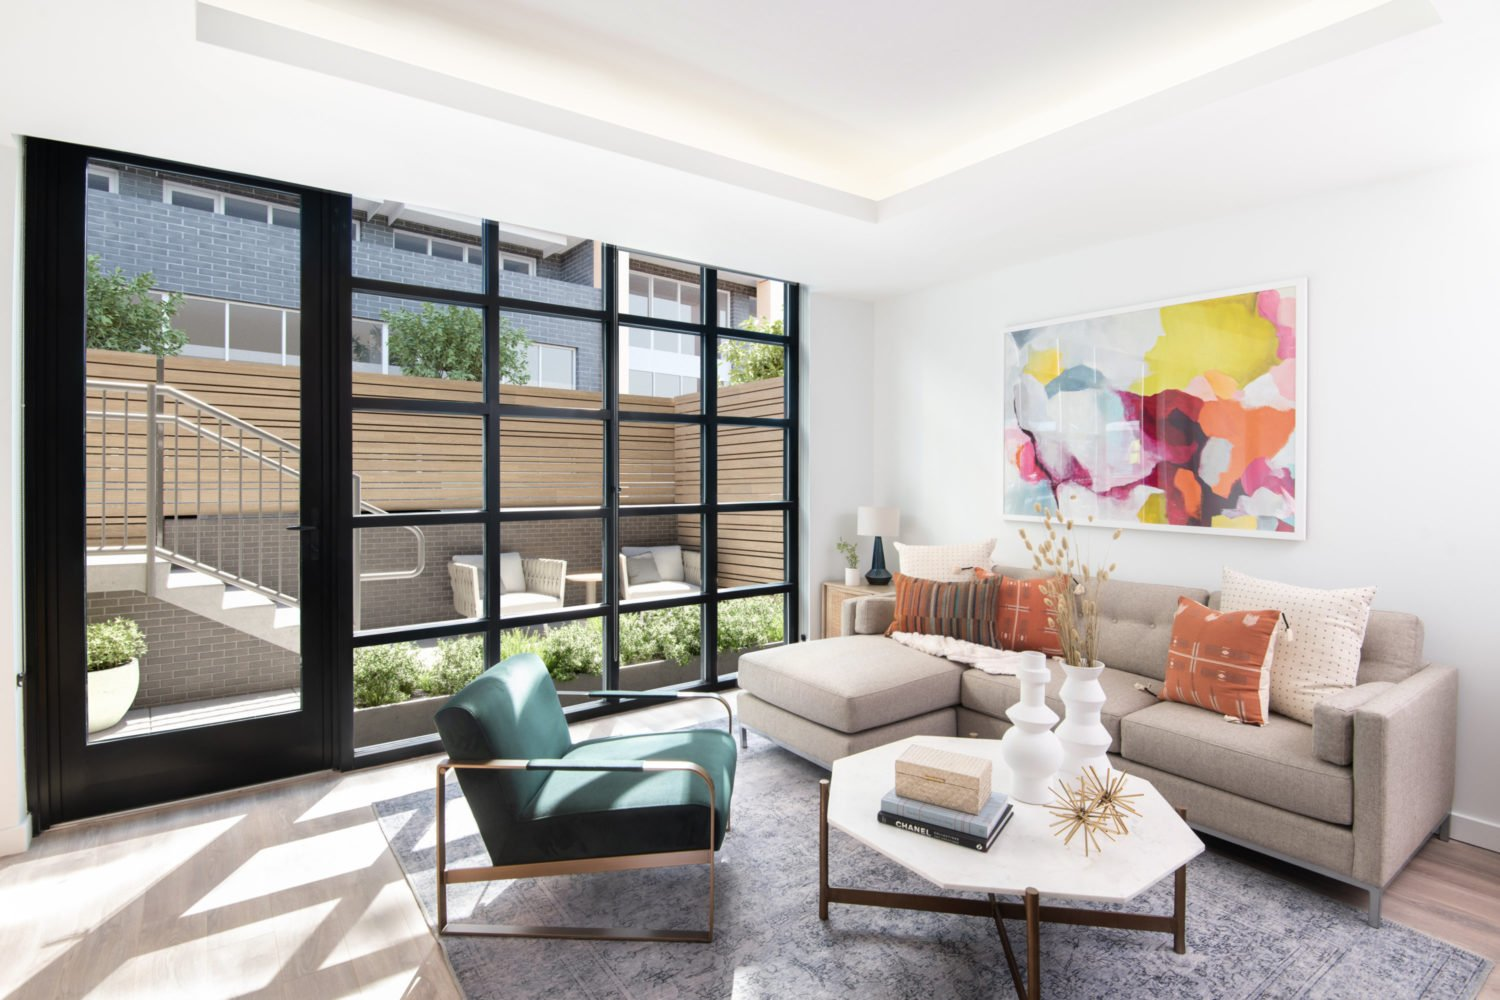 Spacious Multi-Level Homes in Eckington Offer an Inviting Escape